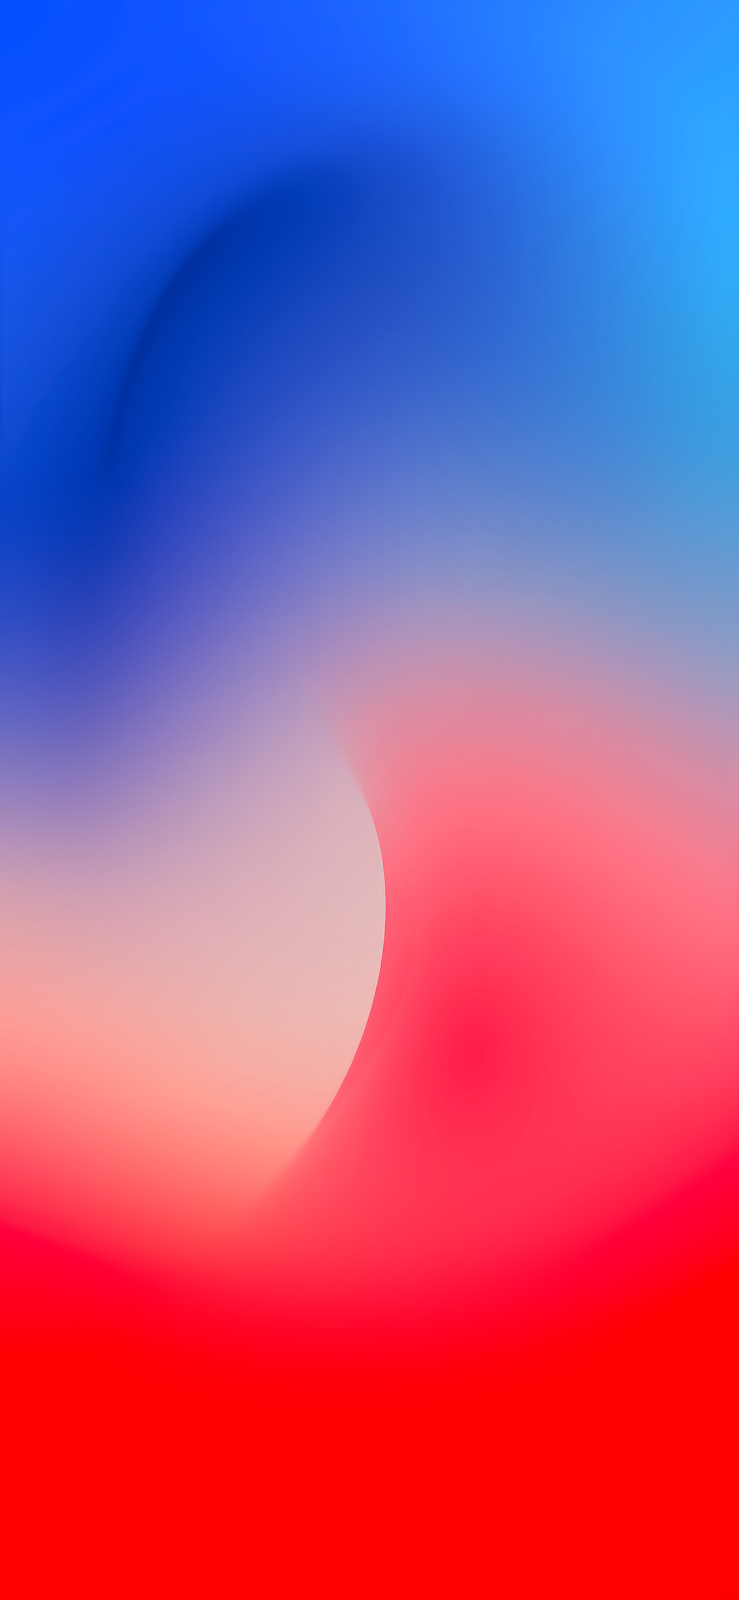 Fluid Blue And Red By Ar72014 Iphone Homescreen Wallpaper